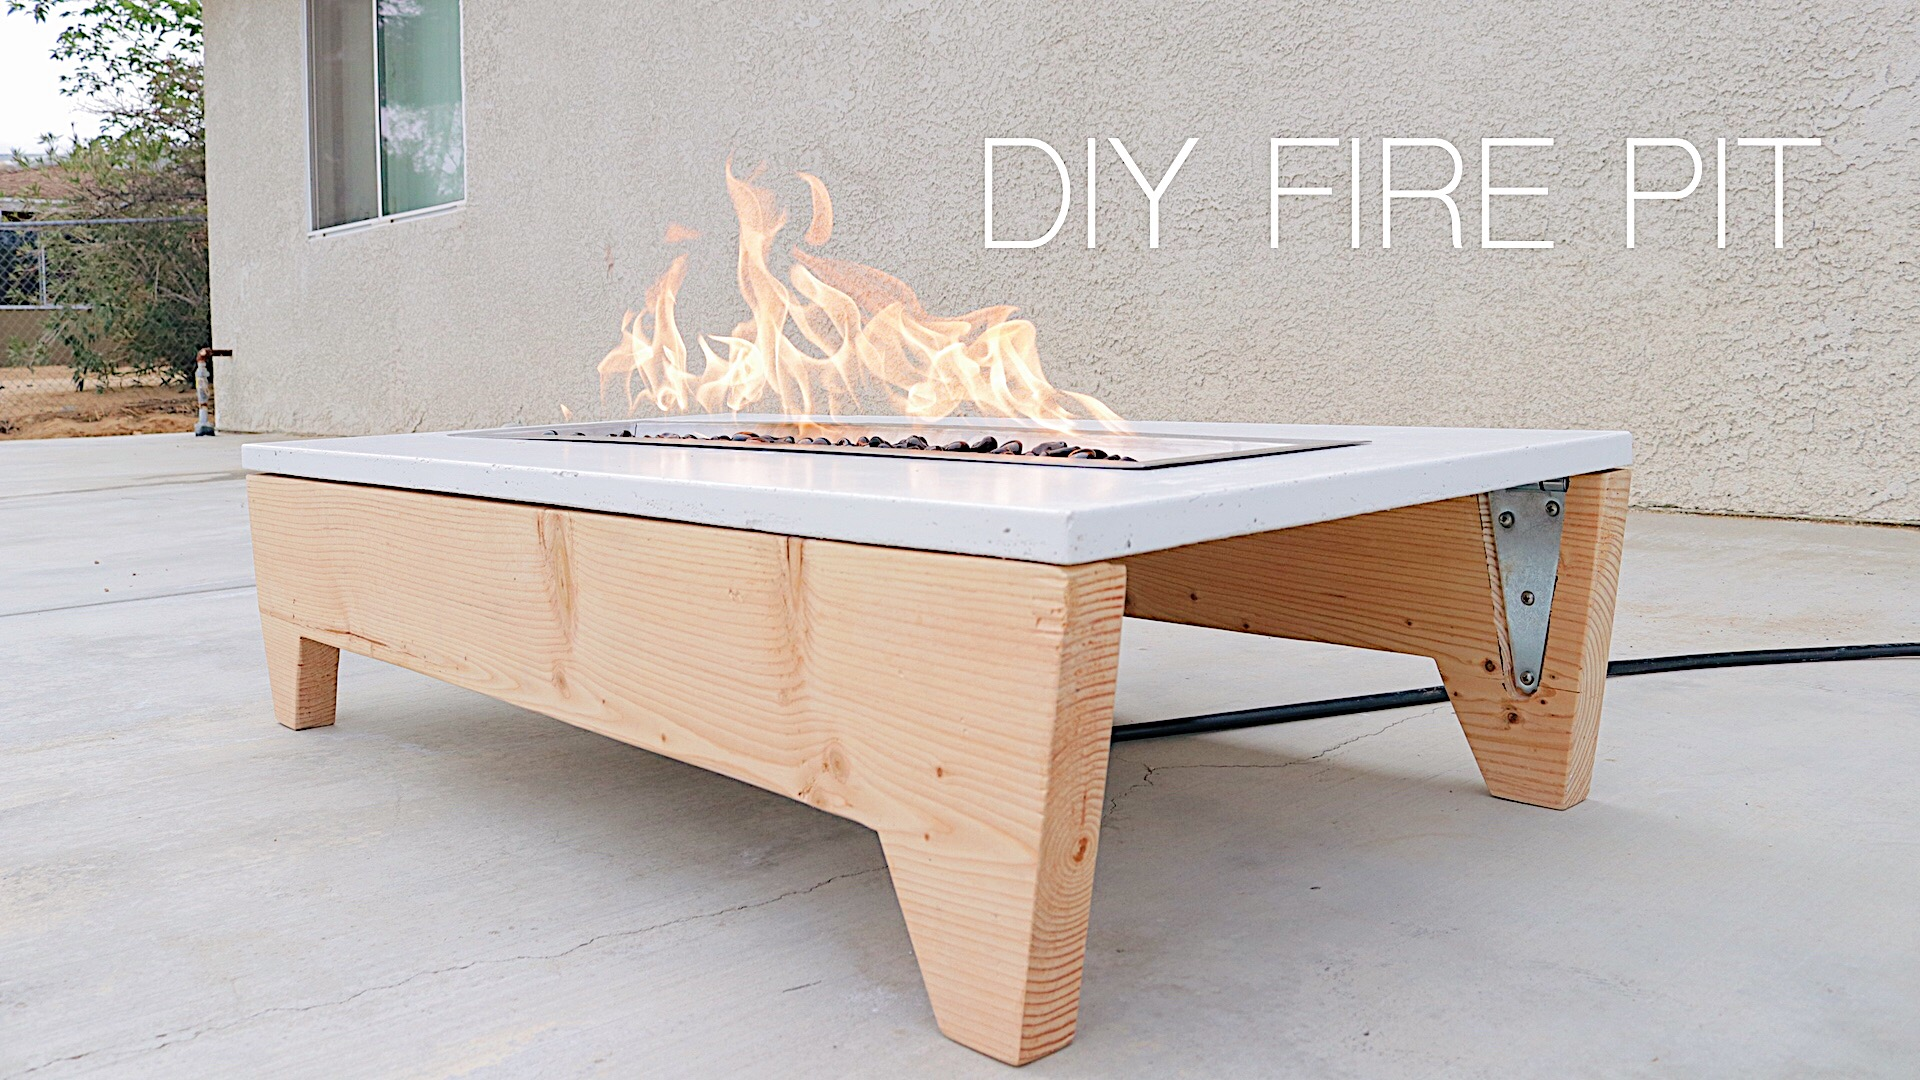 How to Build a Portable, Concrete Fire Pit by: Mike Montgomery | Modern Builds